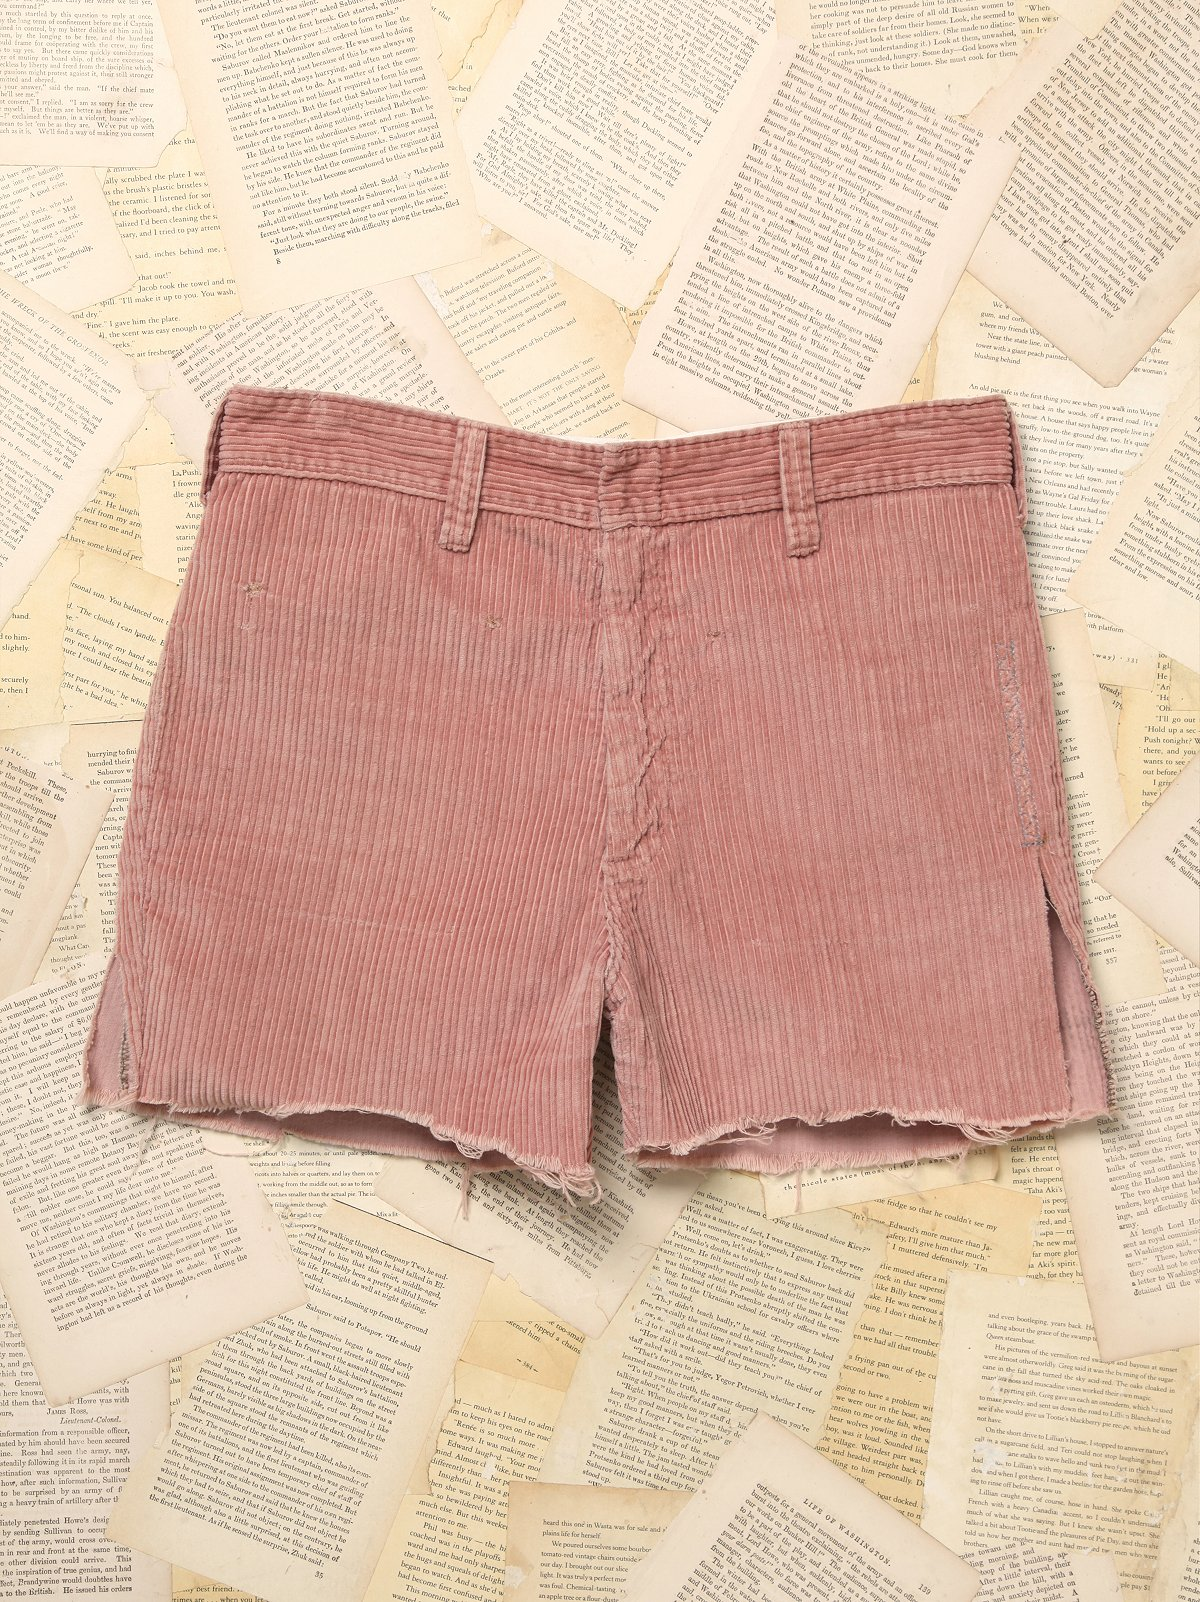 Vintage 1960s Cord Cut Off Shorts